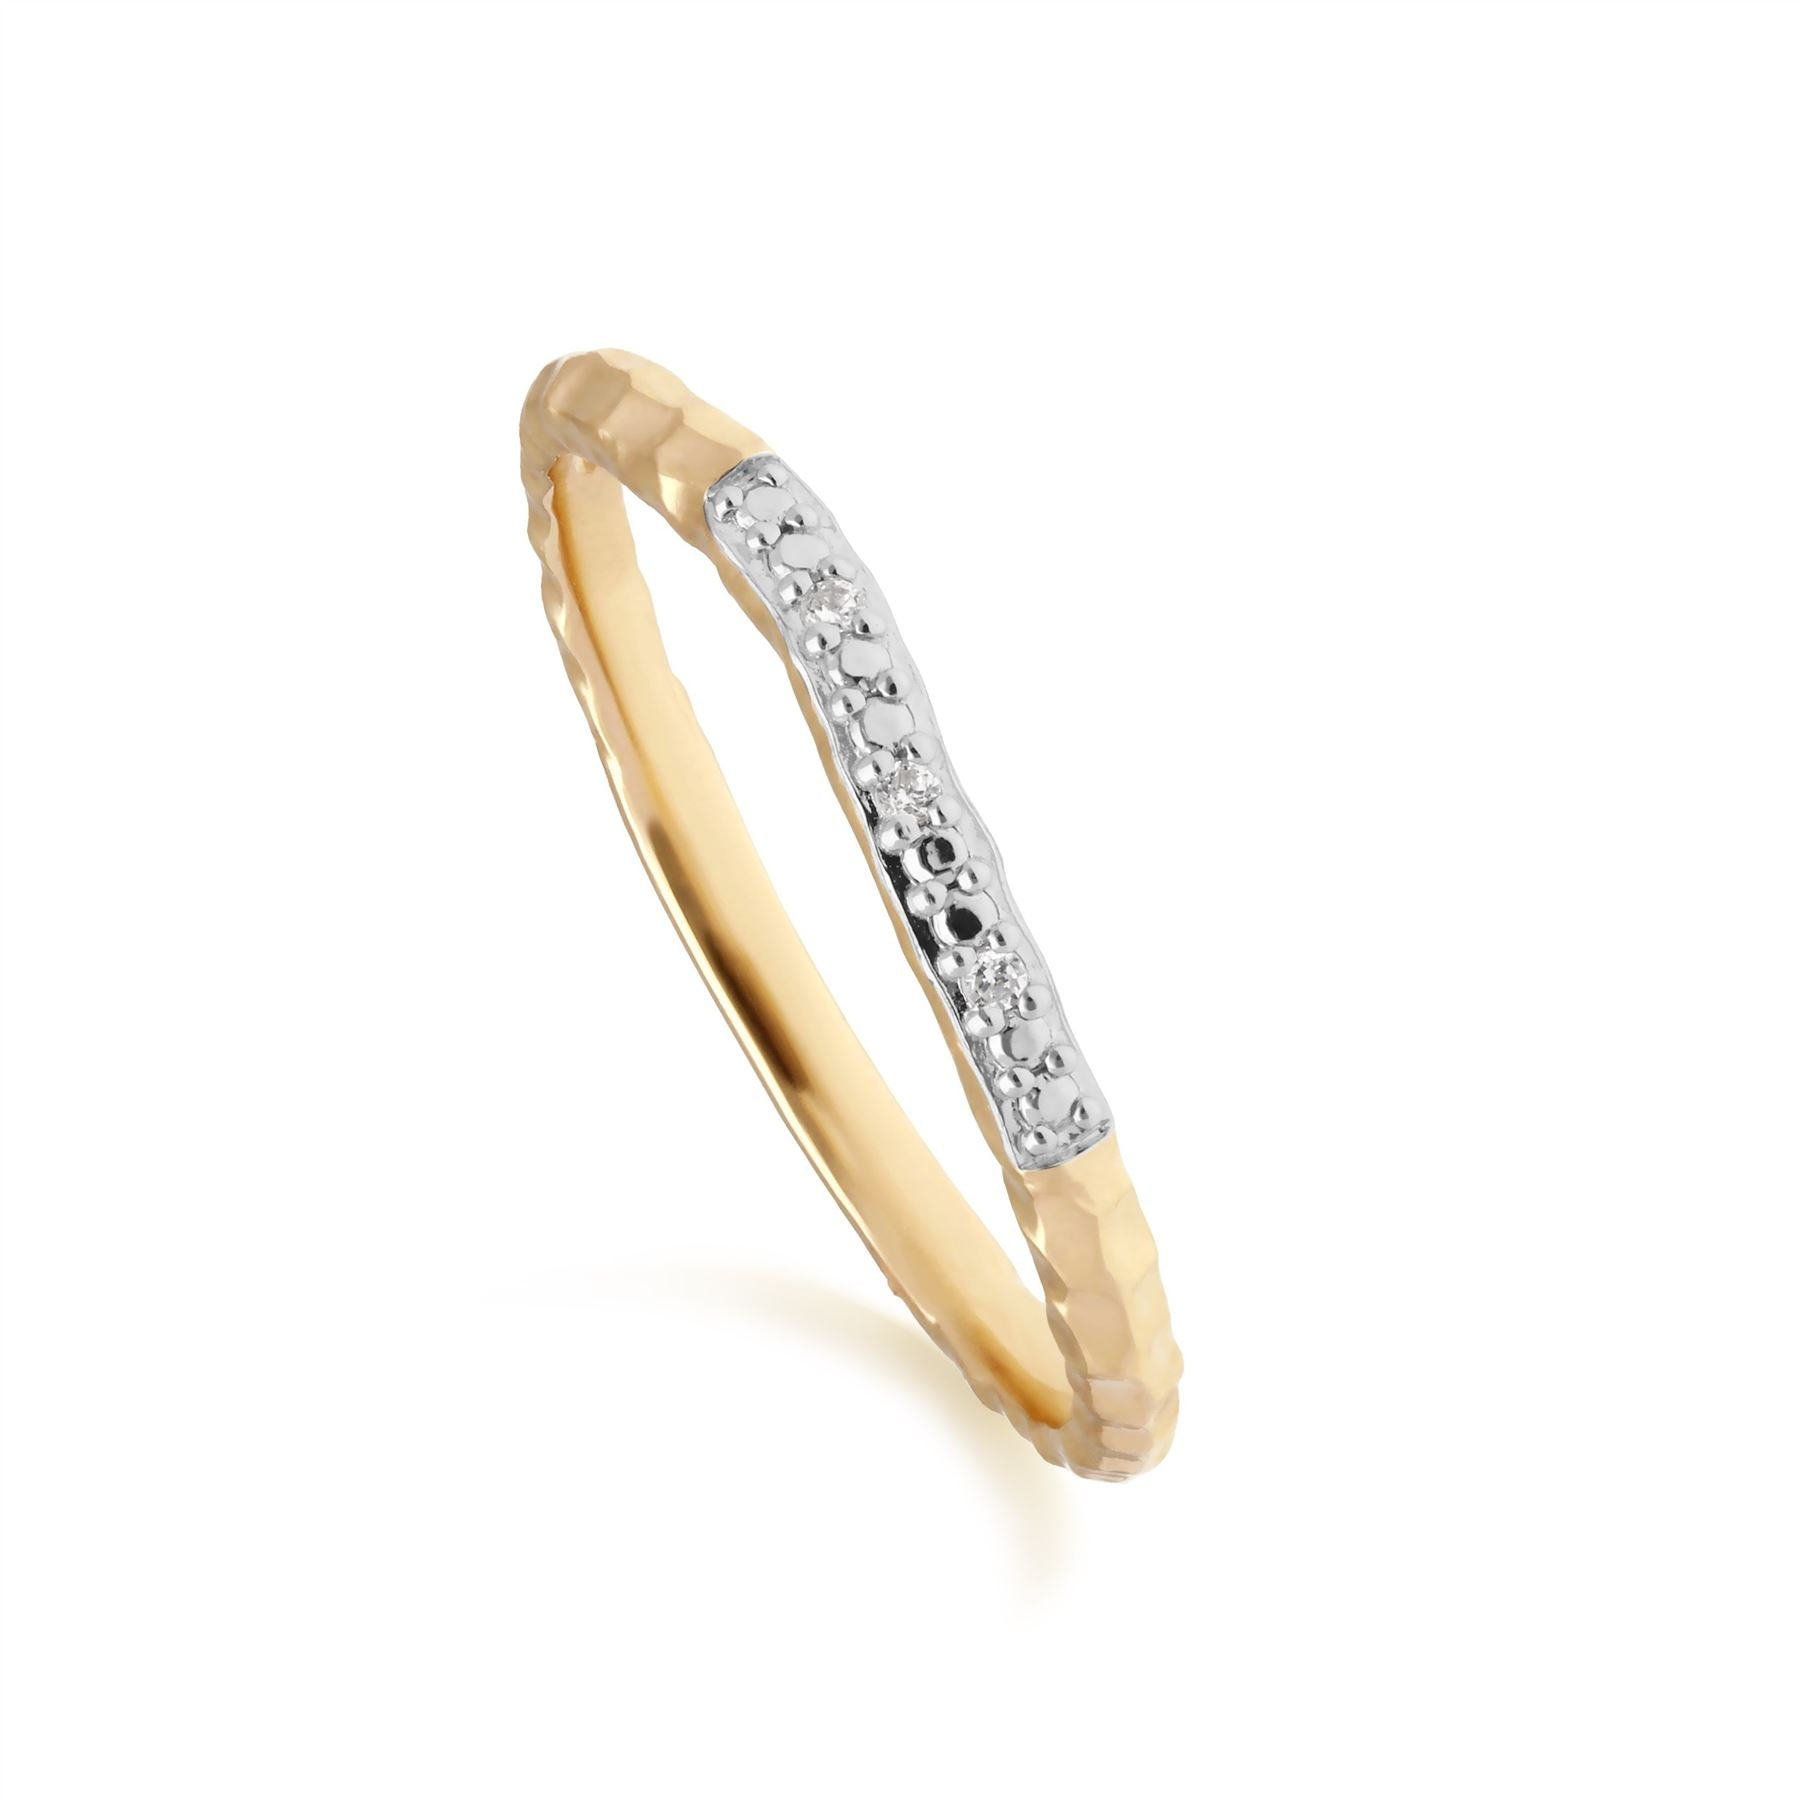 Image of            Diamond Pave Hammered Band Ring in 9ct Yellow Gold